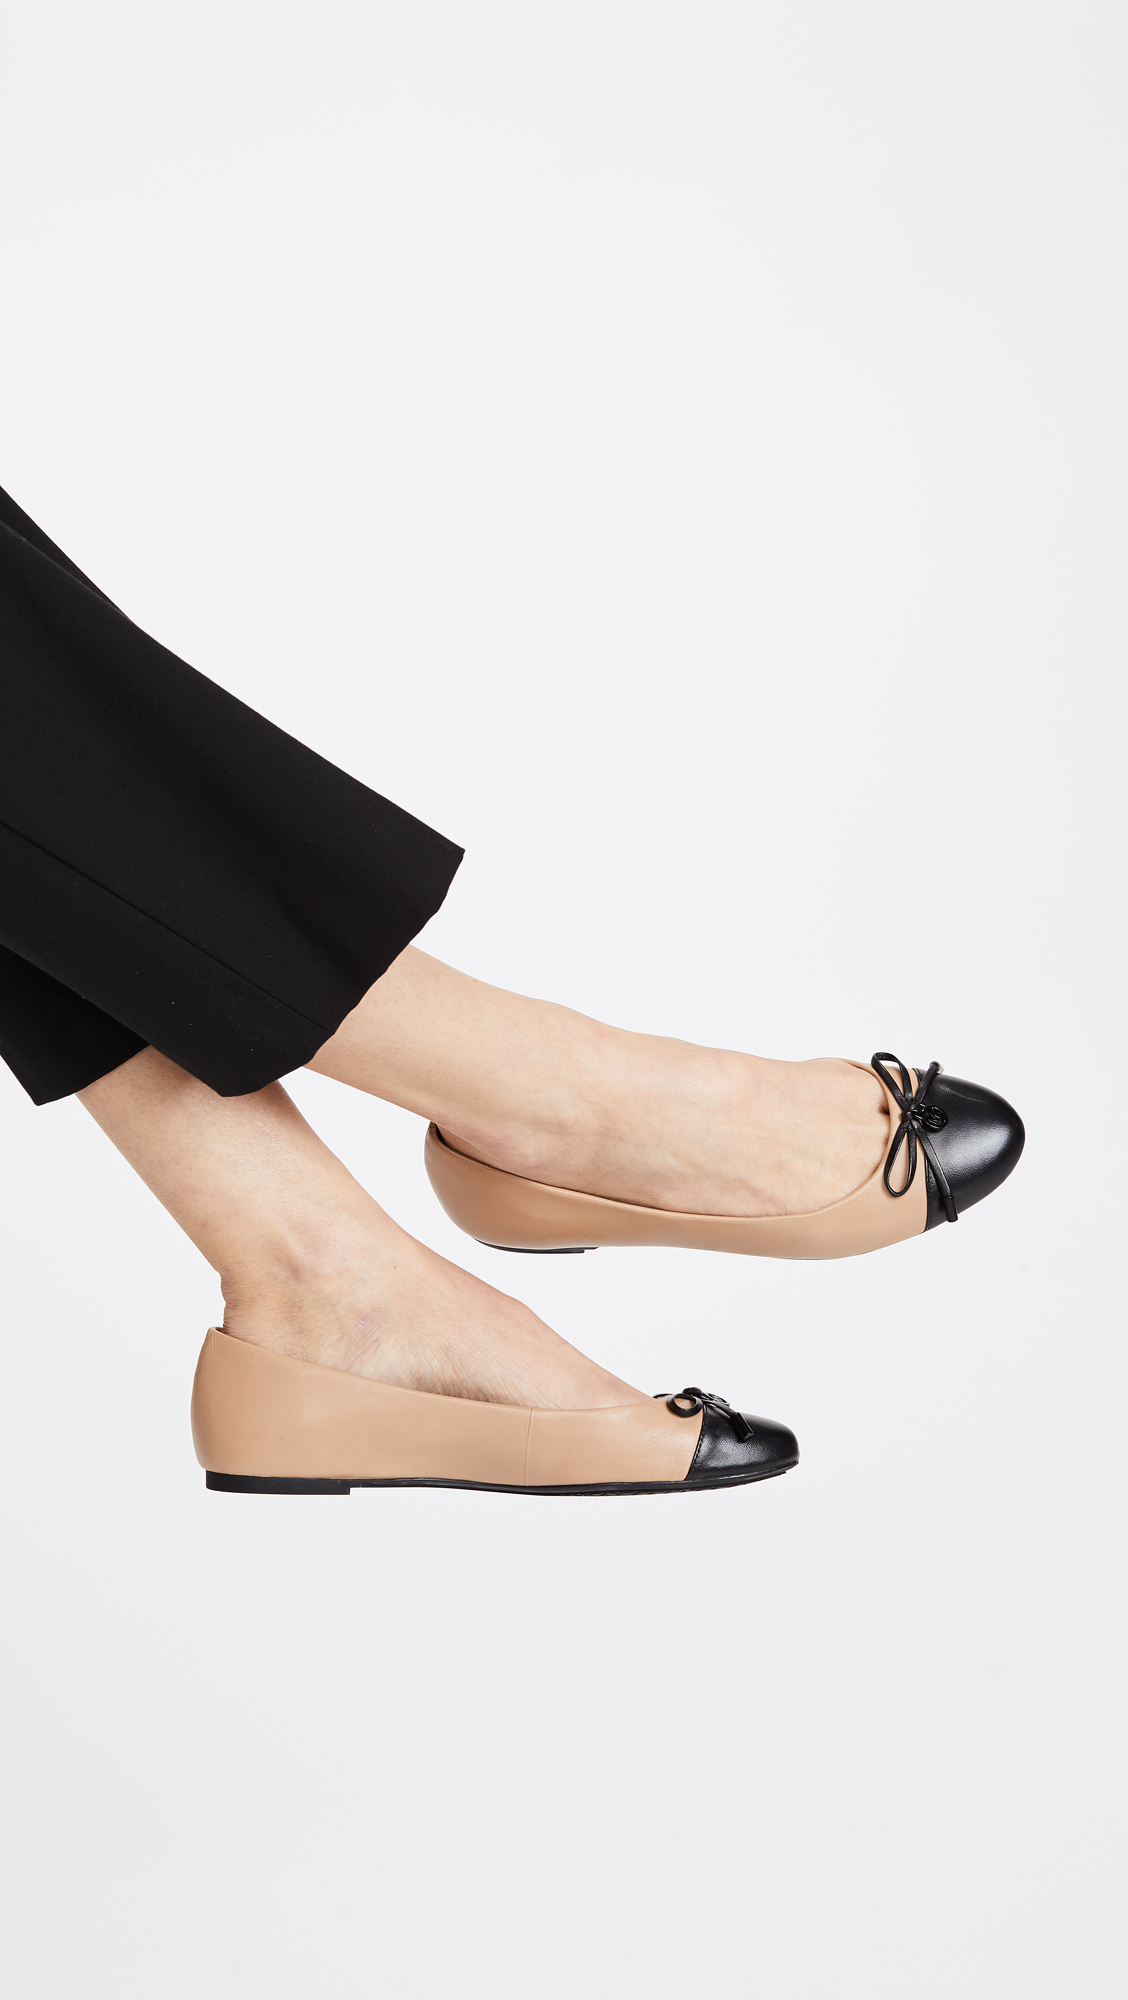 Their Dupes #6 CHANEL Ballet Flats